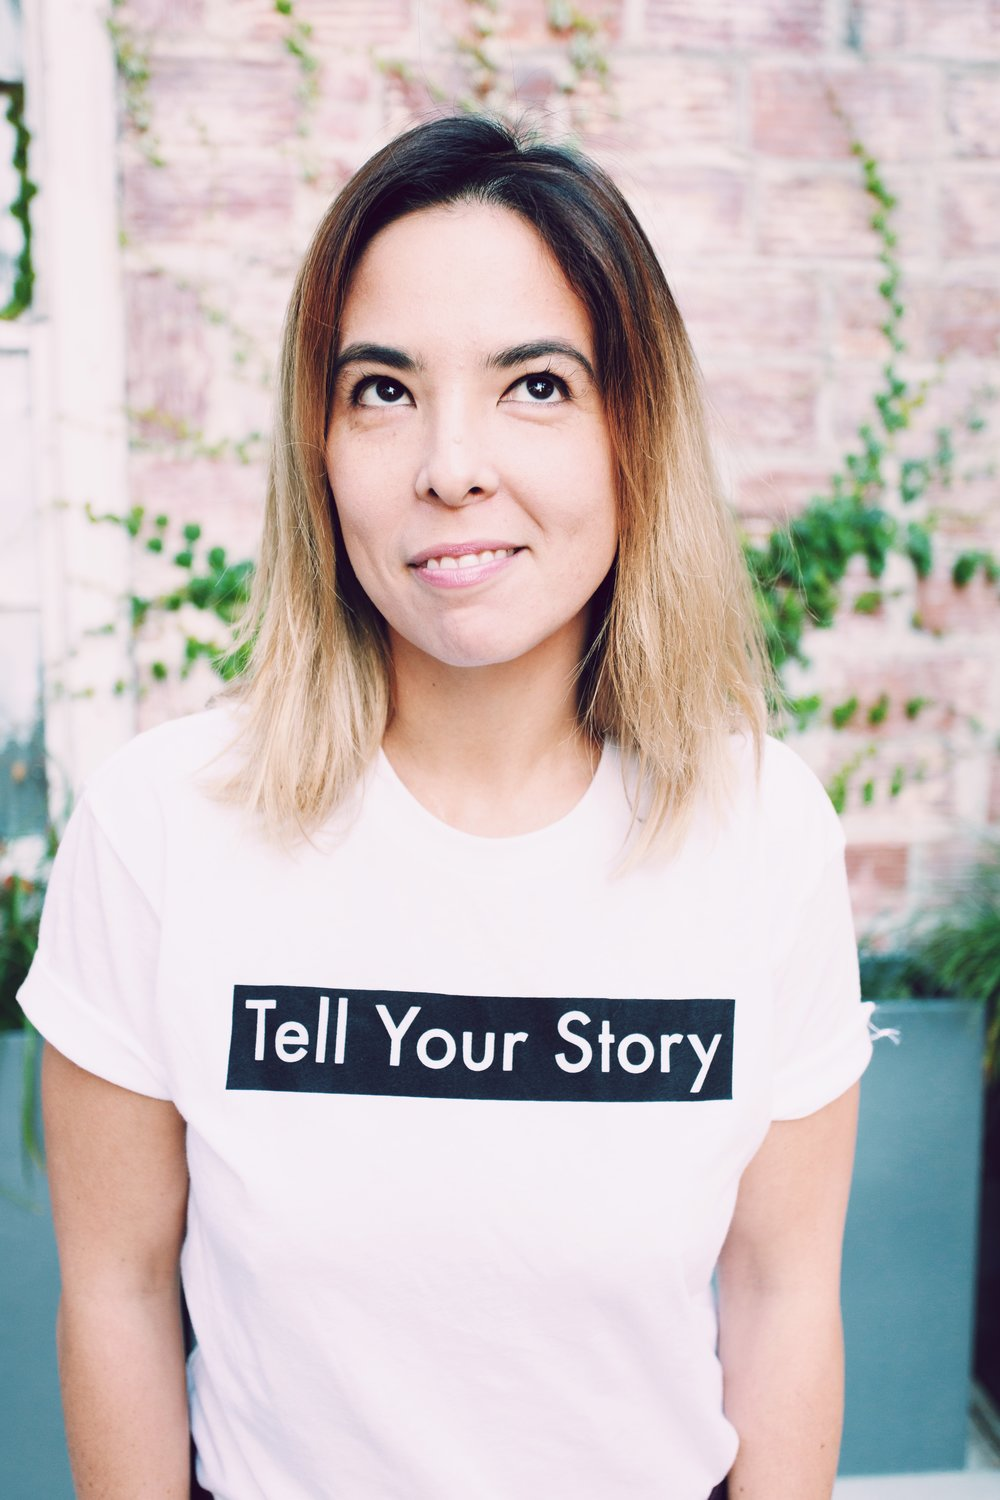 Let's change the way society perceives struggle by telling our stories and encouraging others to do the same. -